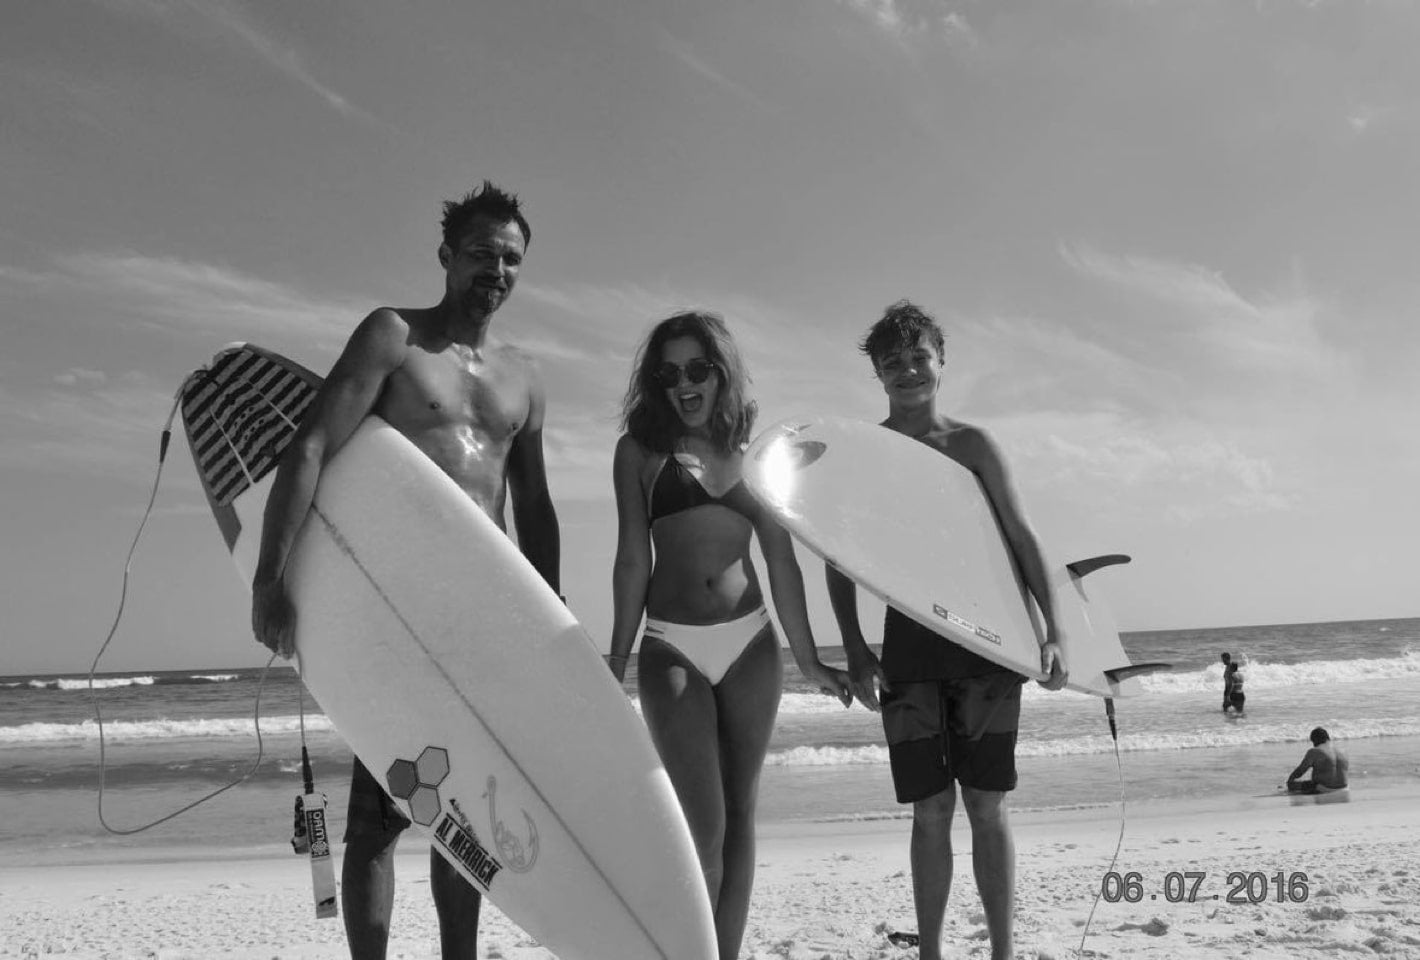 Harry and Kids at beach with surfboards